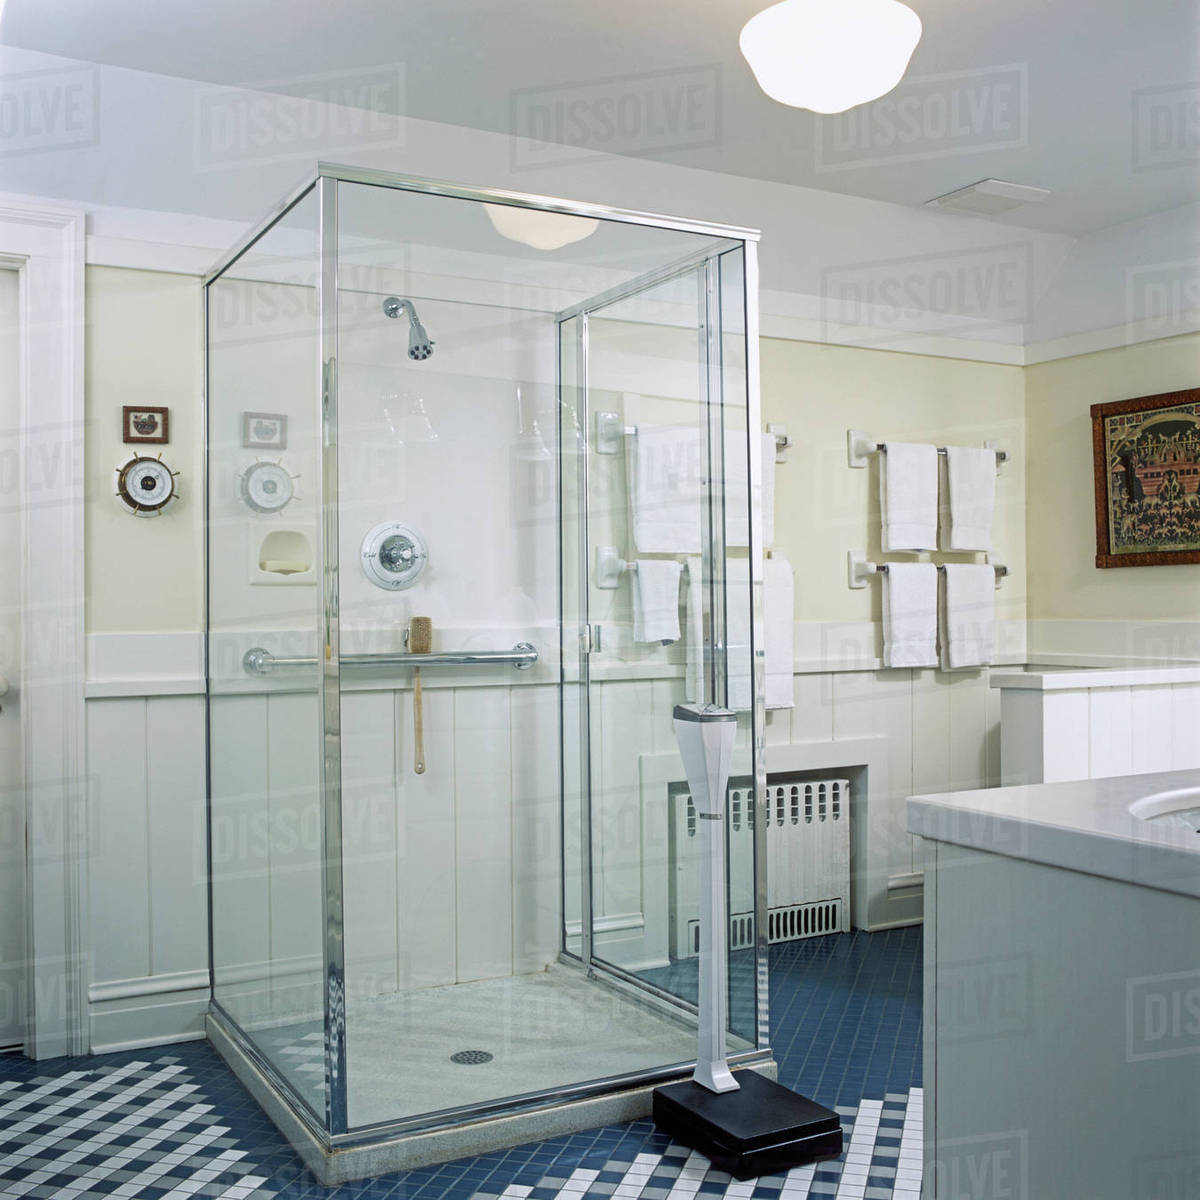 View towards glass box shower stall, teal blue and white tile floor ...